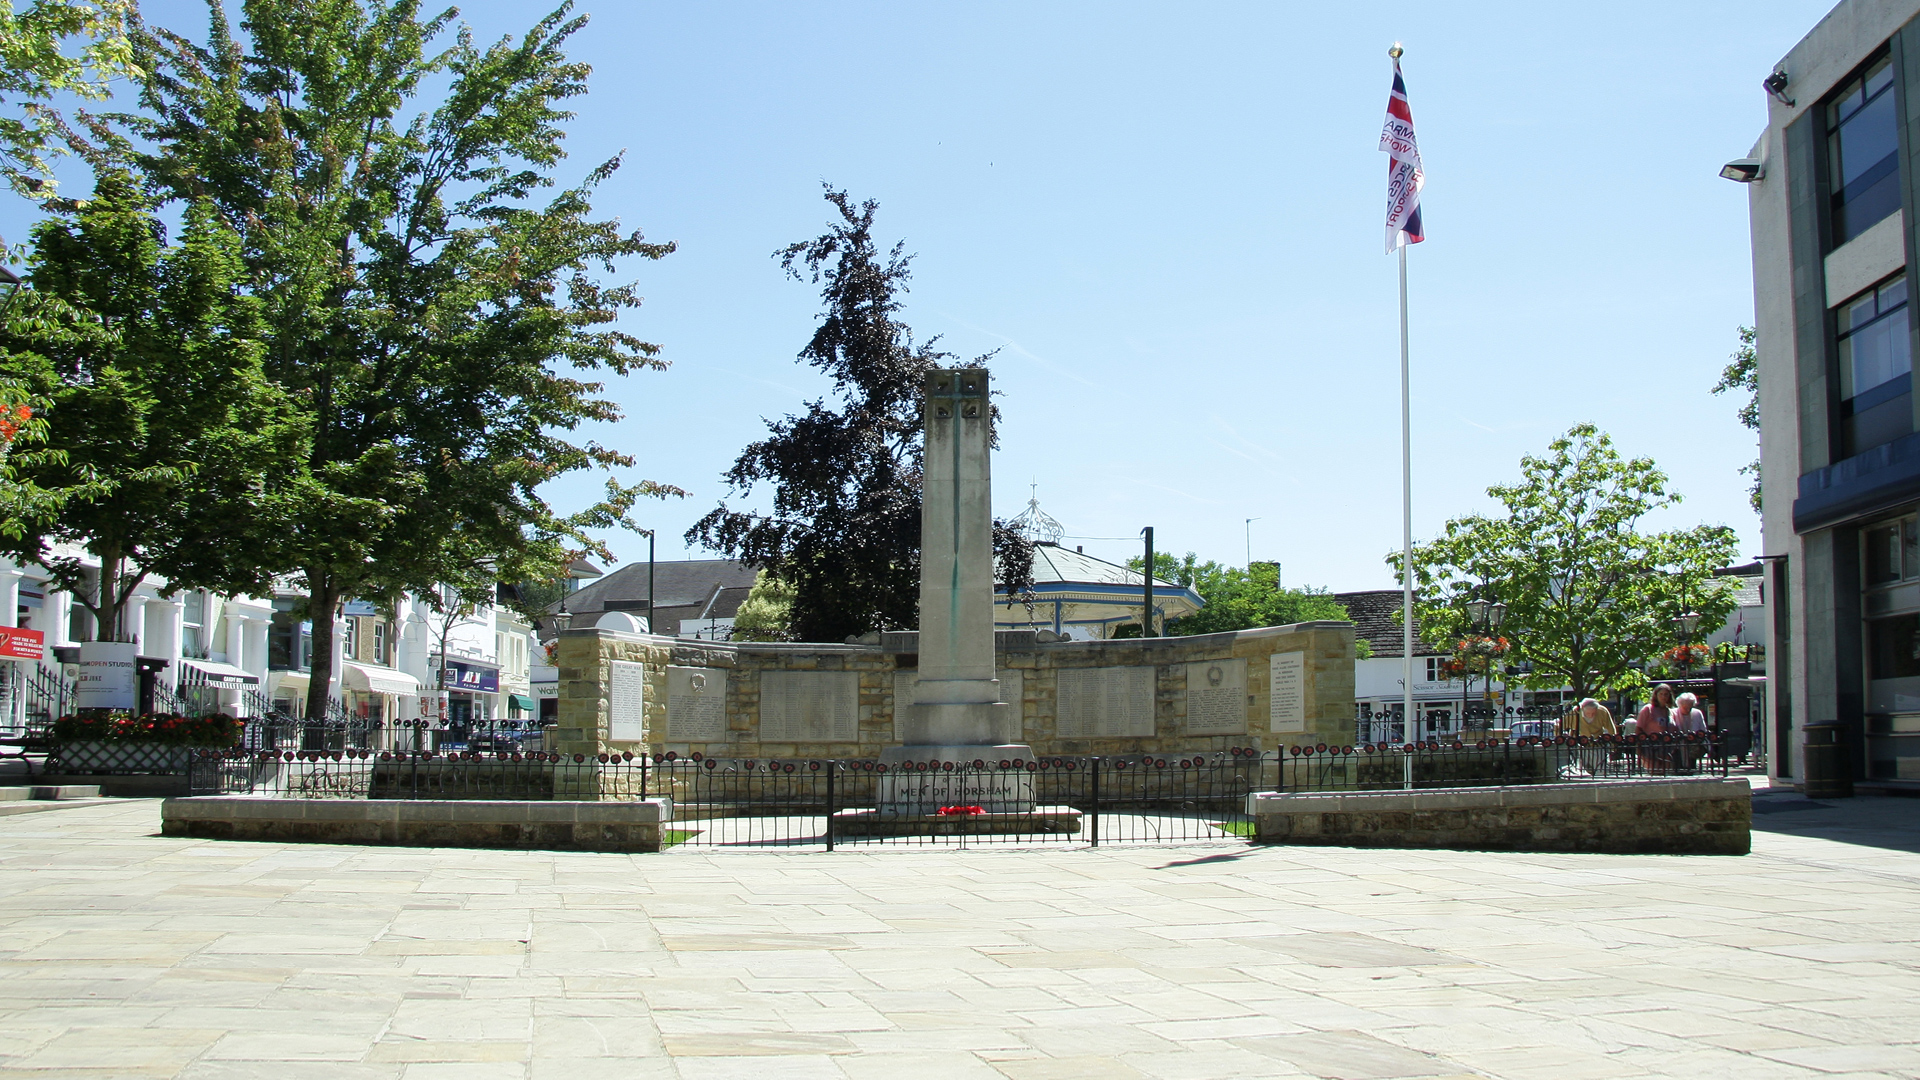 War Memorial, Carfax, Horsham